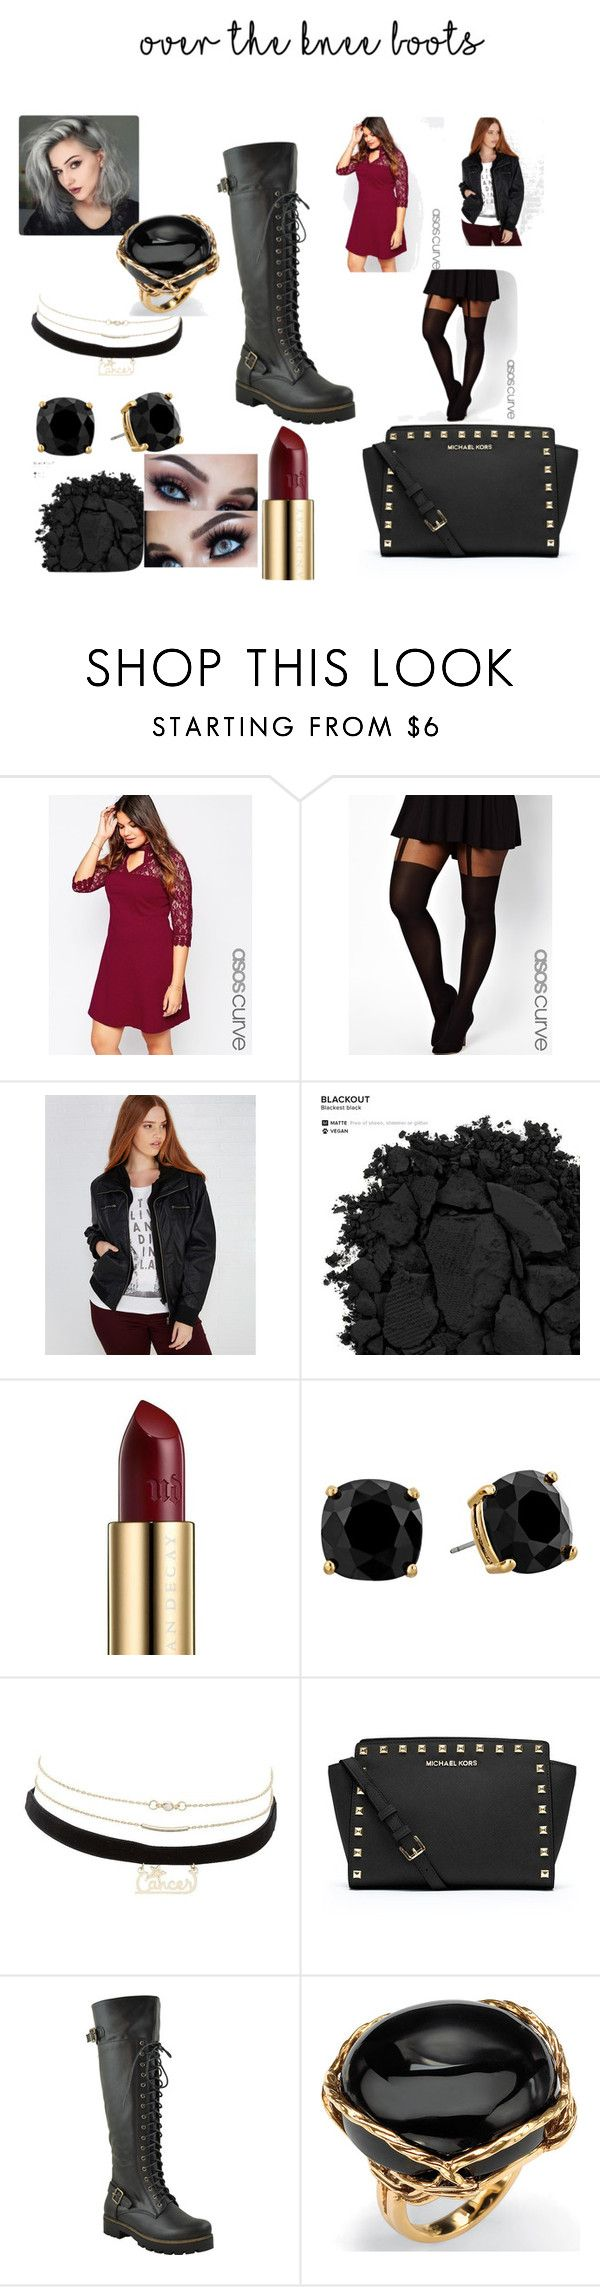 """Over the knee boots"" by kindan3rdy22 ❤ liked on Polyvore featuring ASOS Curve, Ambiance Apparel, Urban Decay, Kate Spade, Charlotte Russe, MICHAEL Michael Kors, Palm Beach Jewelry and plus size clothing"